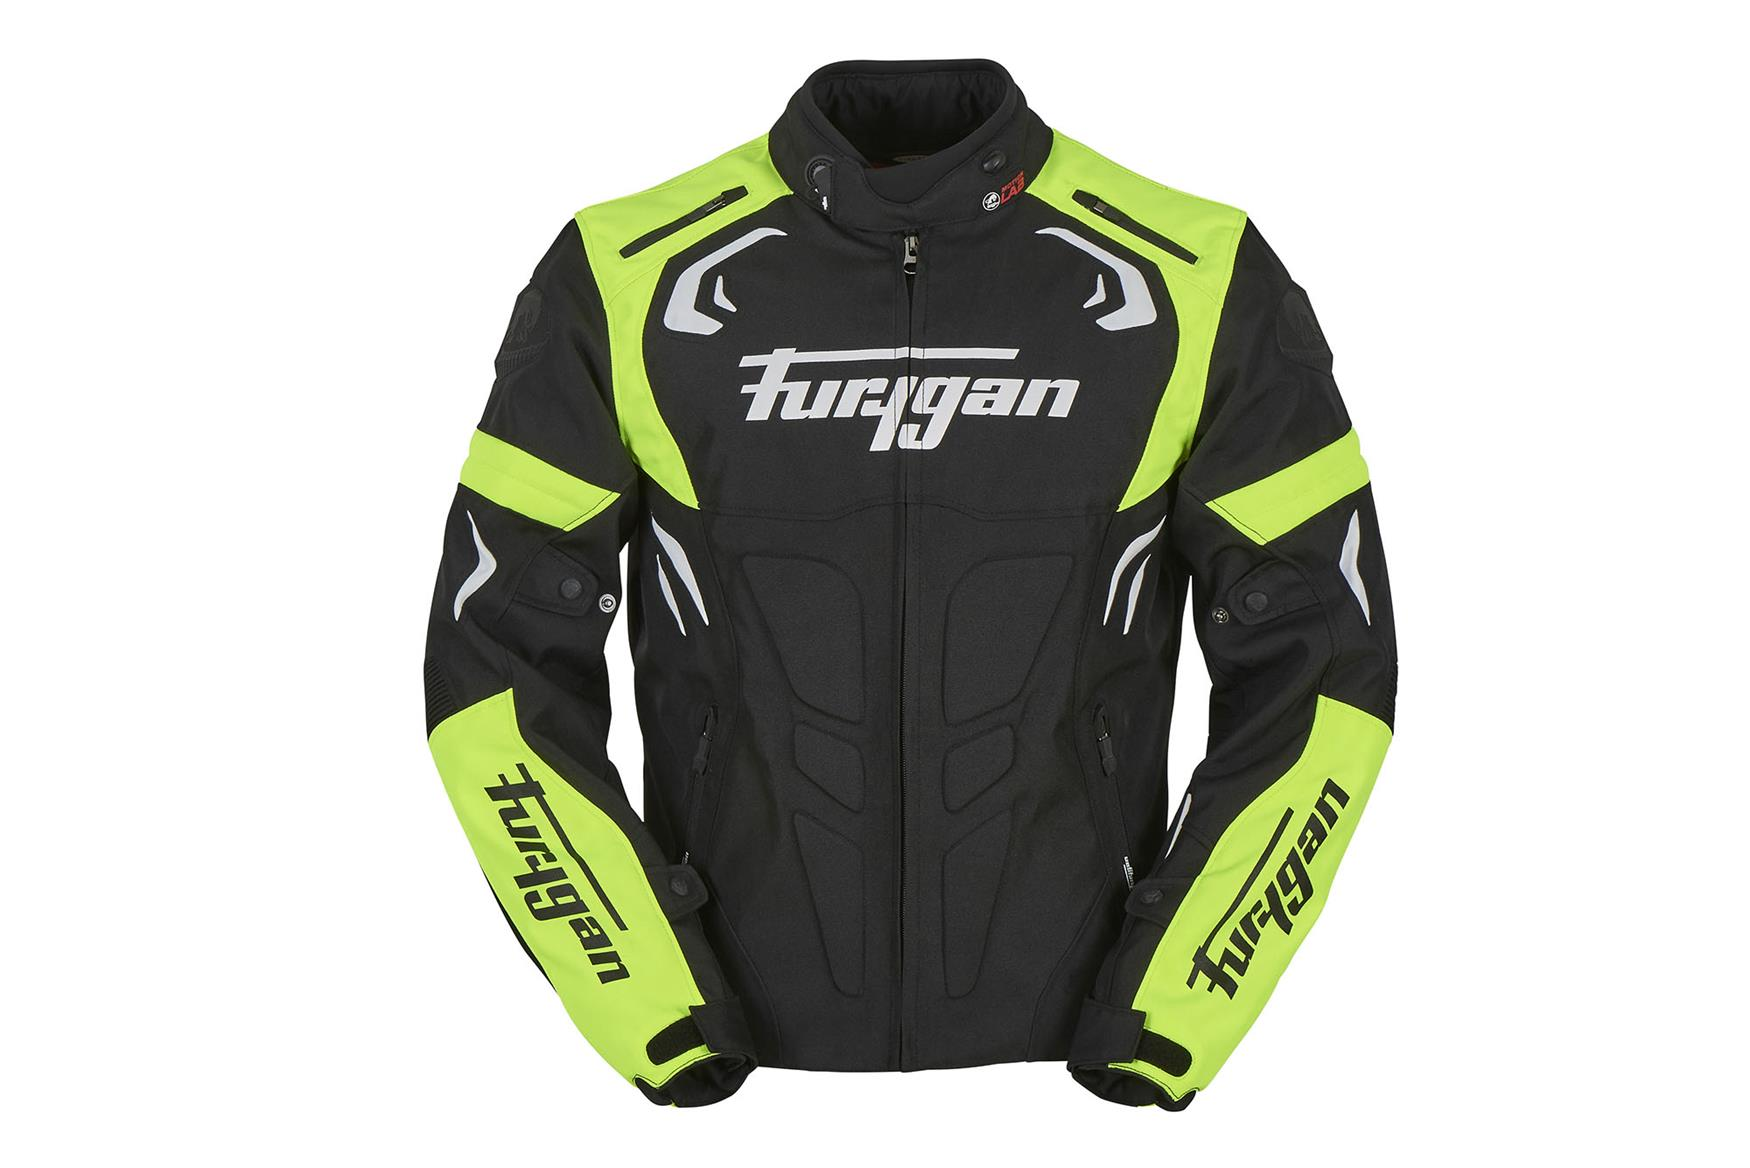 A new colour option for the Furygan Blast textile jacket